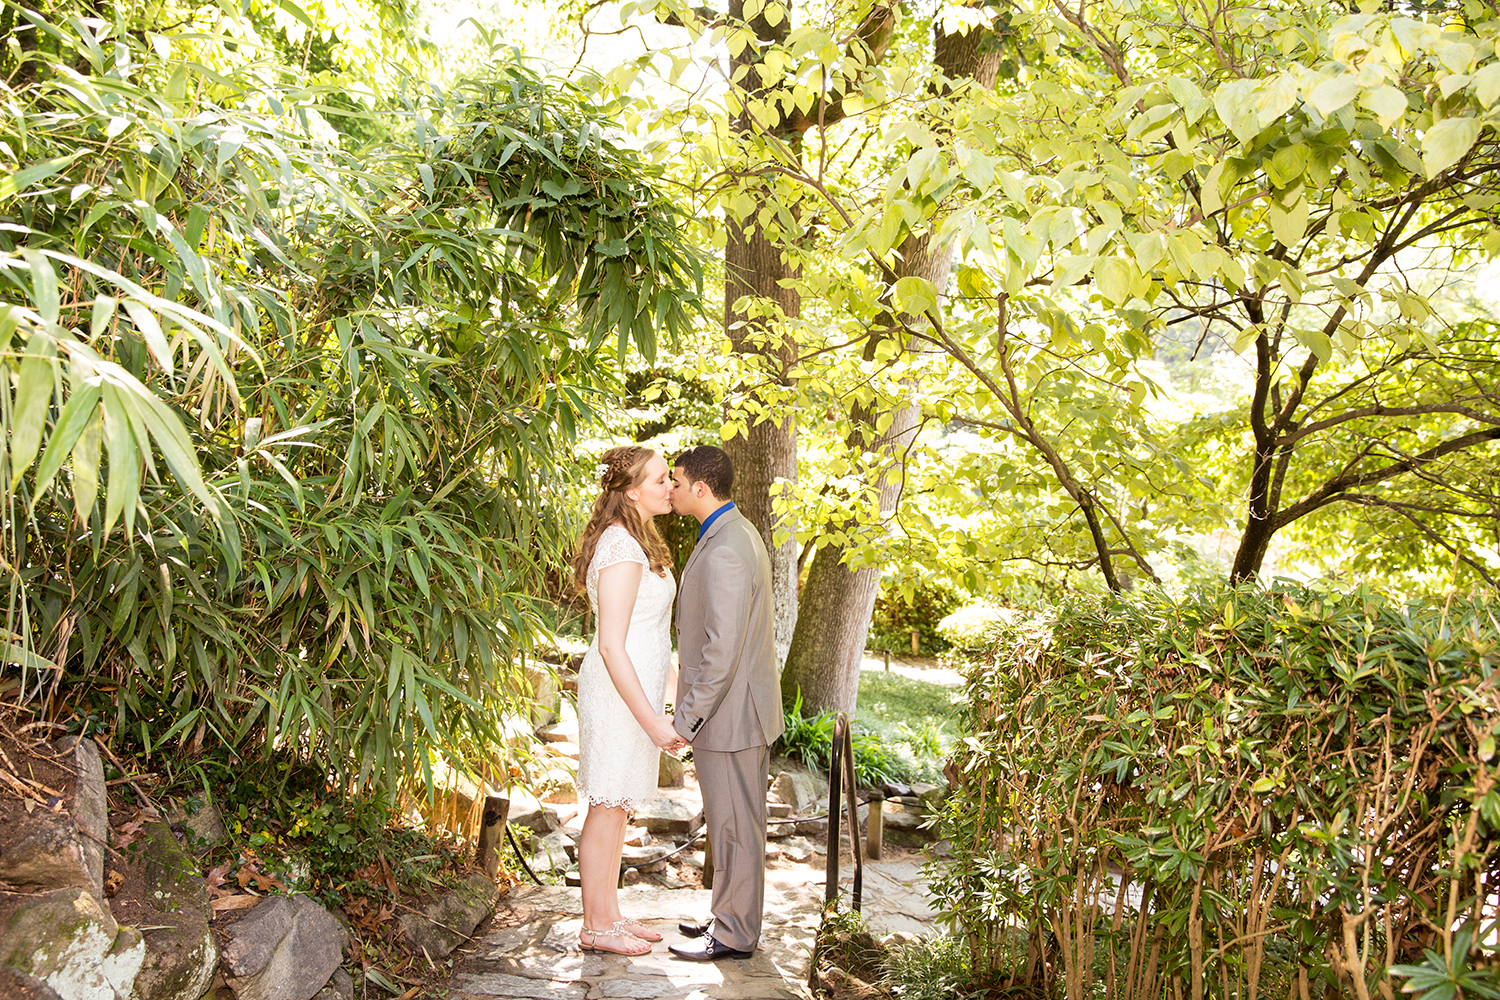 Cheyanna  Ronnies Maymont Elopement - Image Property of www.j-dphoto.com